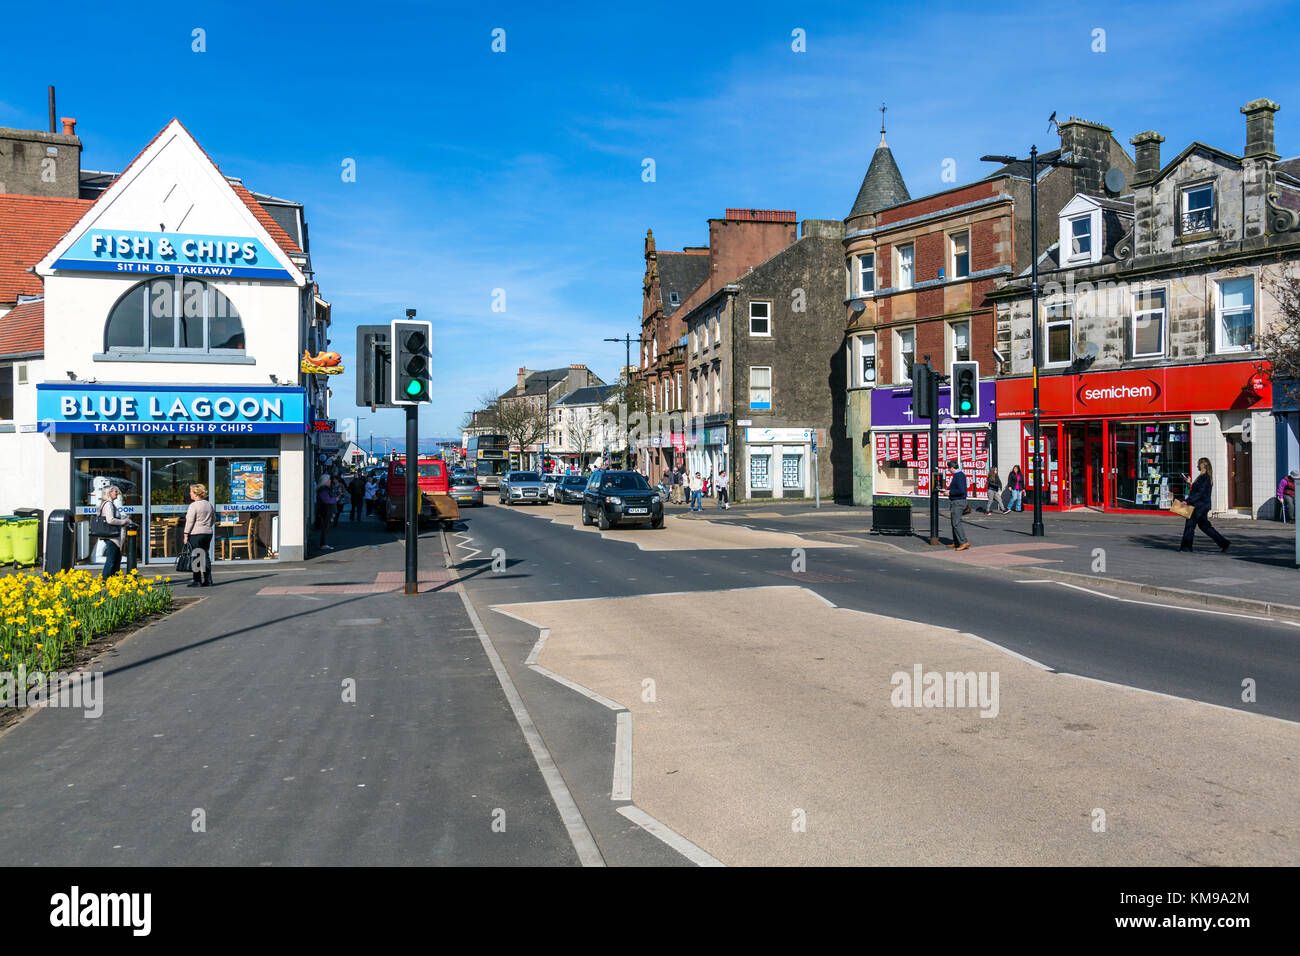 Main Street in the seaside town of Largs in North Ayrshire, Scotland, UK - Stock Image